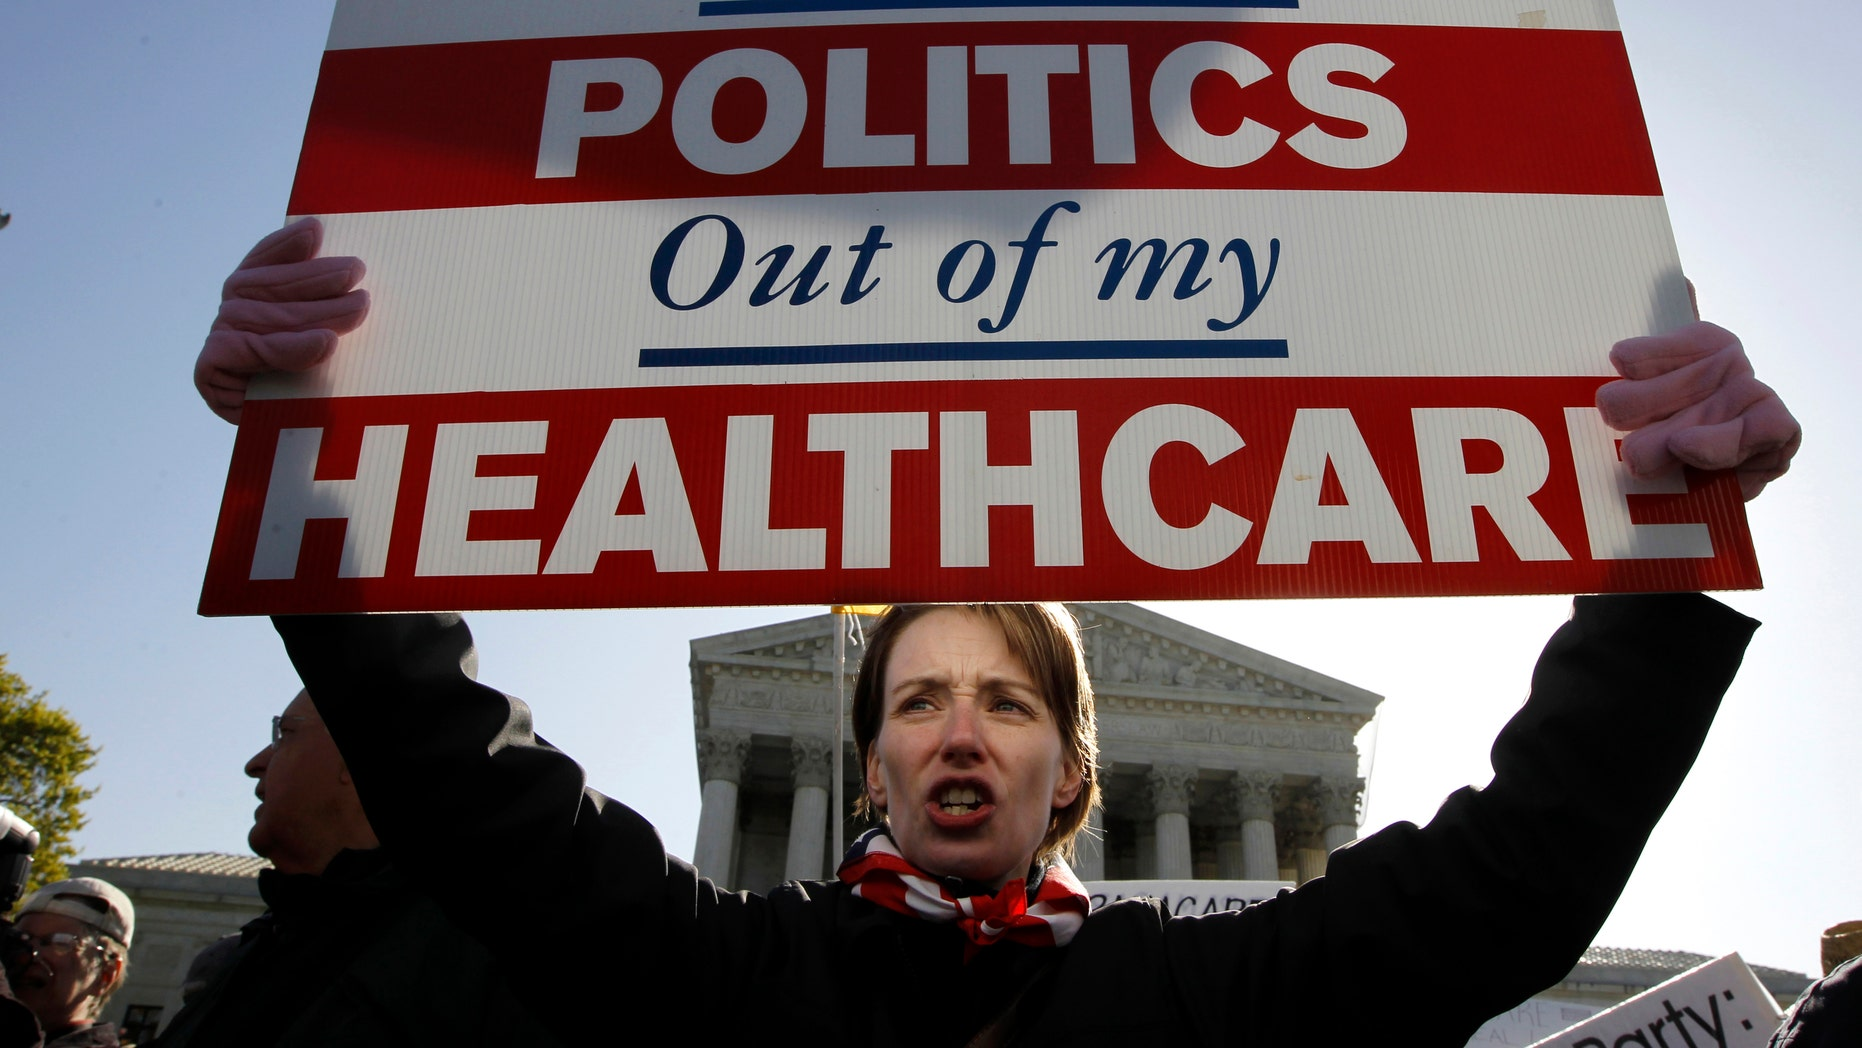 FILE - In this March 27, 2012, file photo, Amy Brighton of Medina, Ohio, who opposes health care reform, rallies in front of the Supreme Court  in Washington. Health care was the defining political battle of President Barack Obamas first term, and _ after the economy_ it remains his most complicated policy challenge at home, central to his place in history.(AP Photo/Charles Dharapak, File)